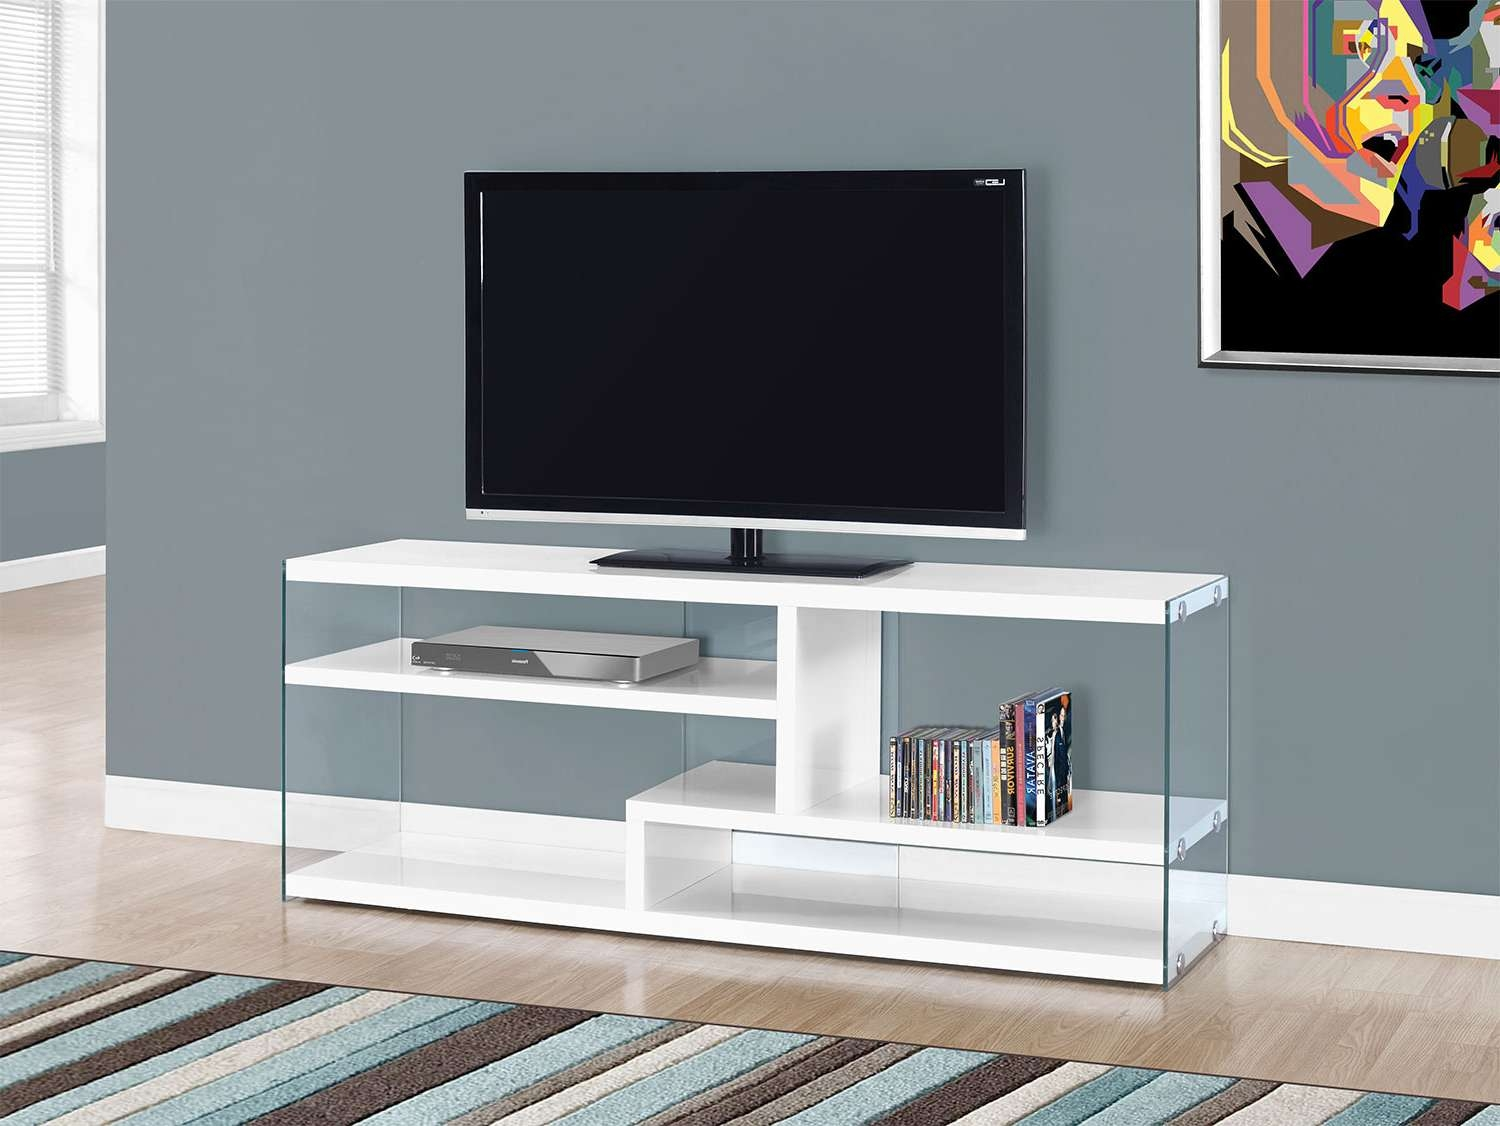 Zara Tv Stand – White | Leon's Throughout White Glass Tv Stands (Gallery 13 of 15)